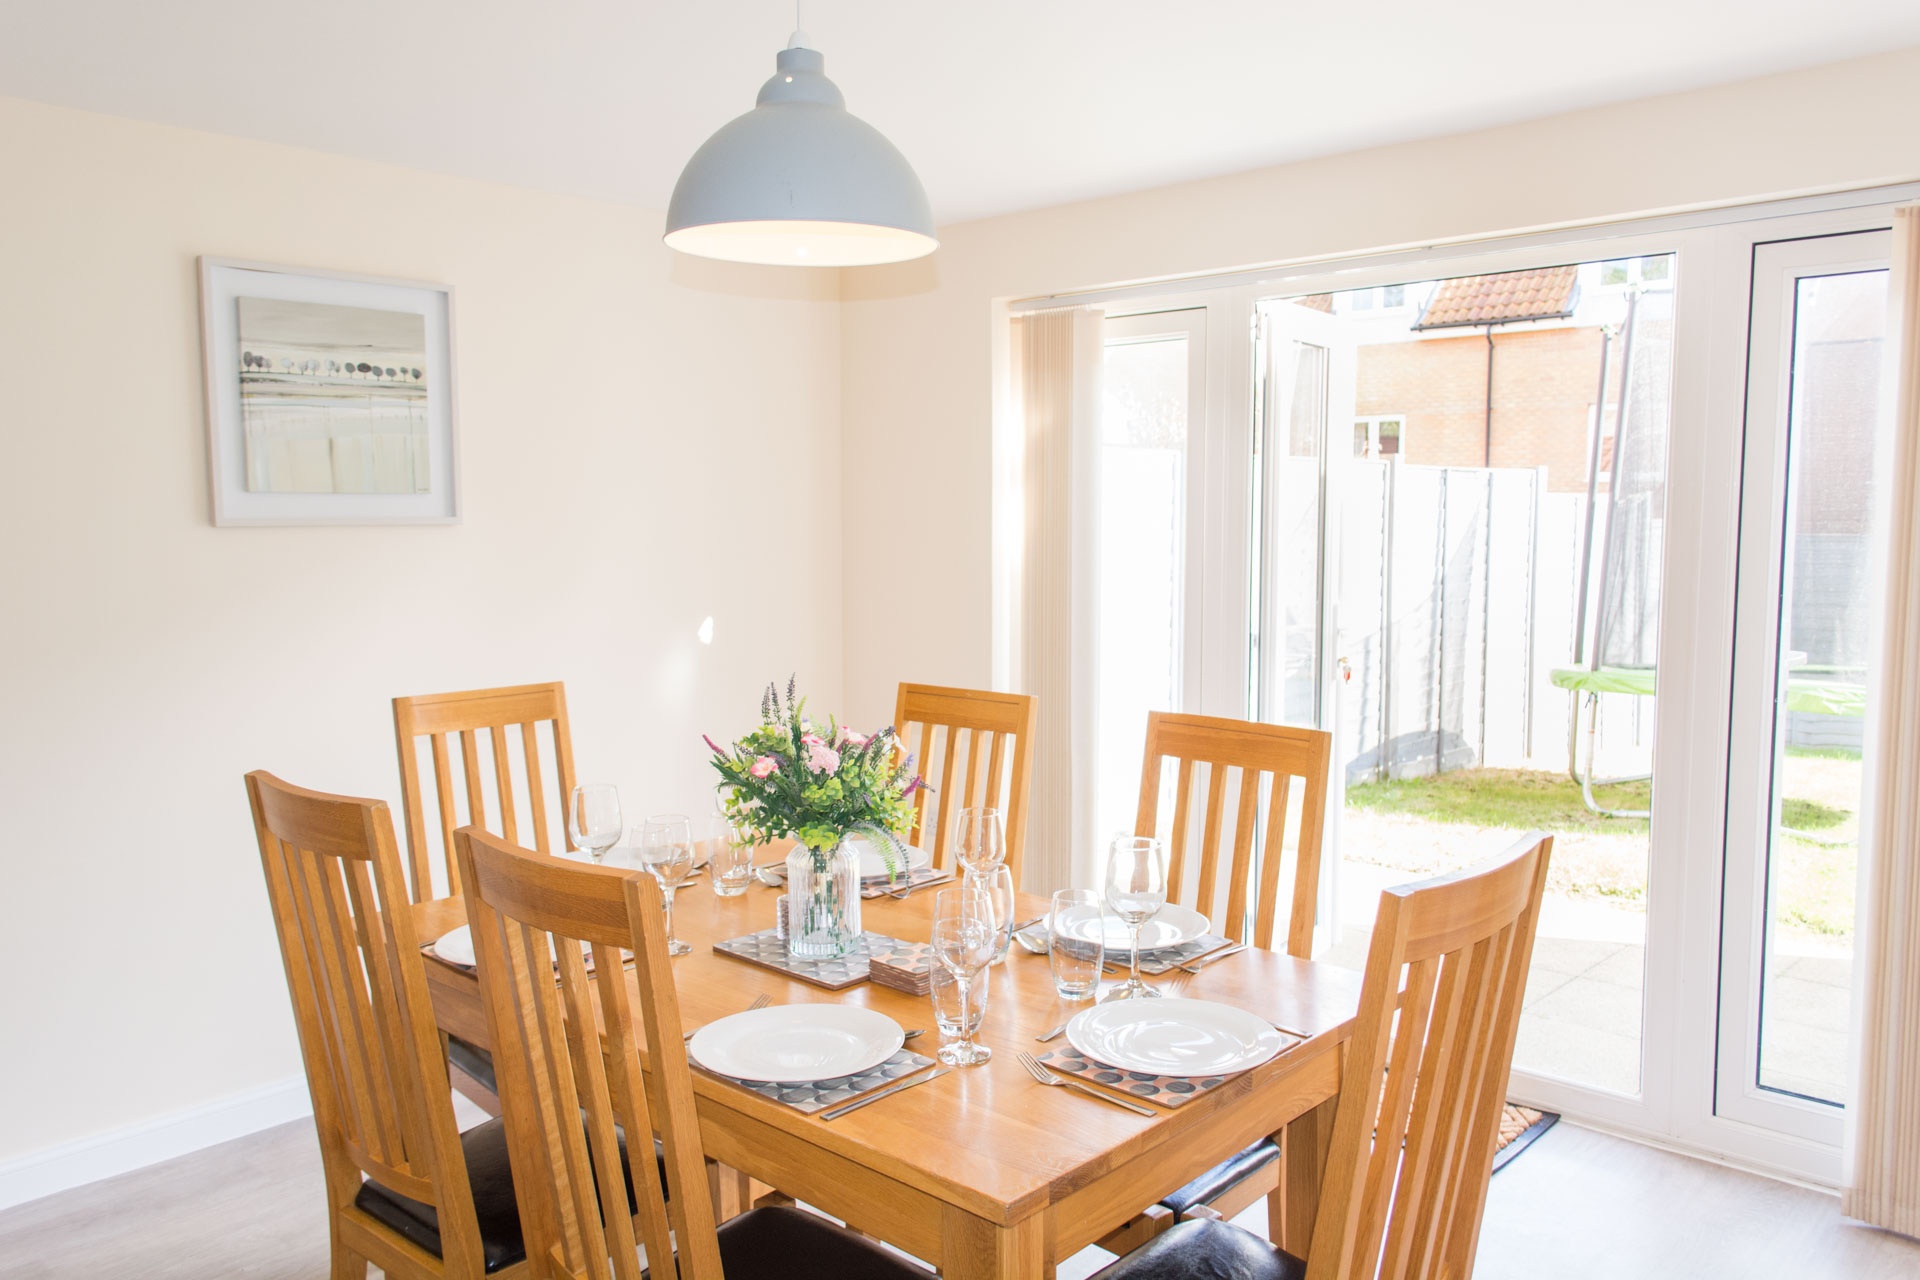 Family dining table and chairs.